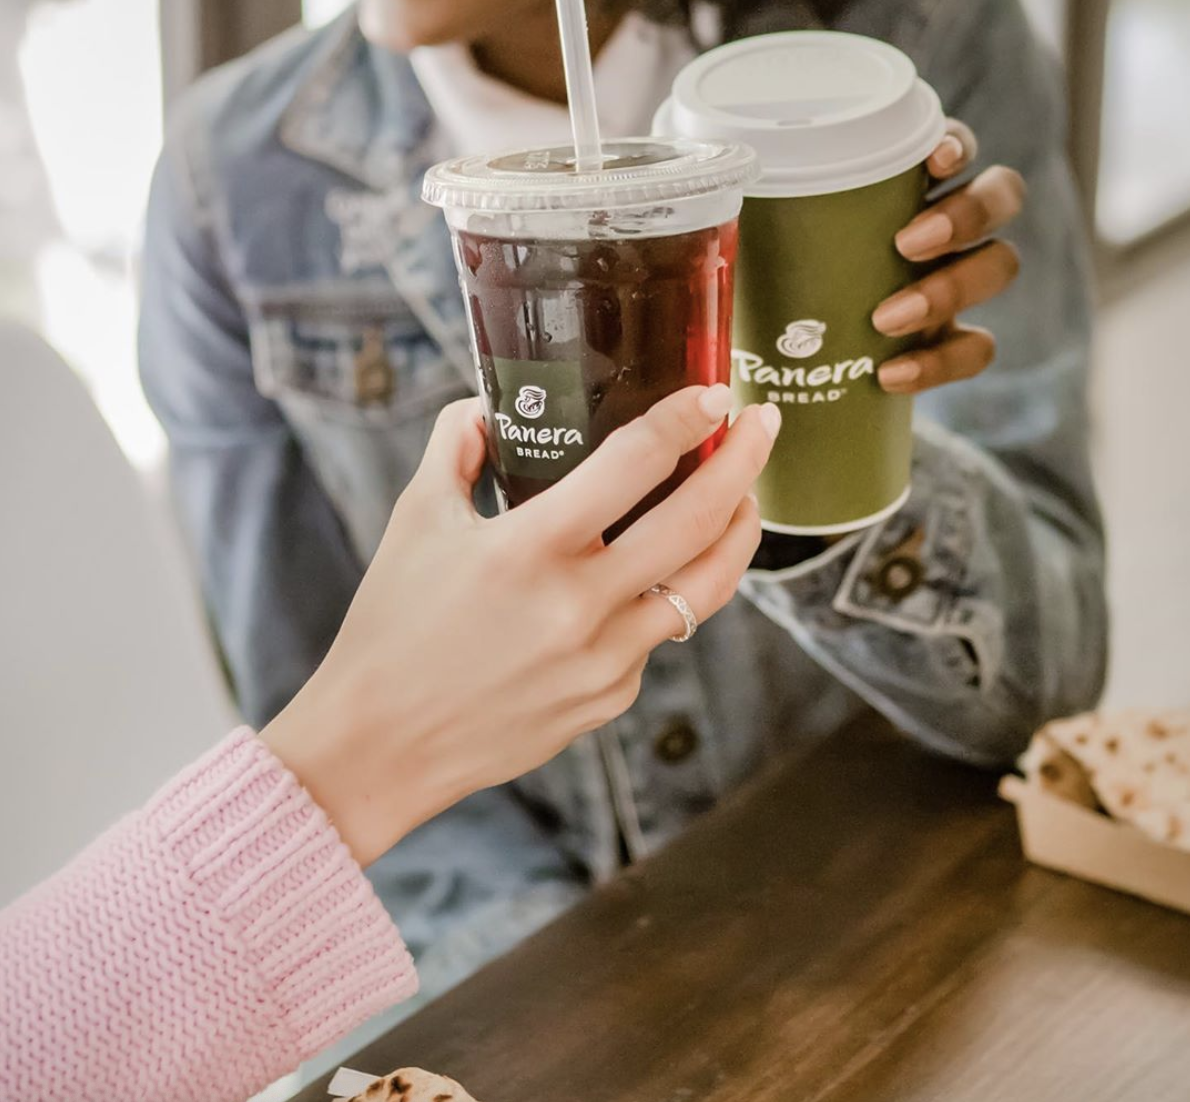 Panera Is Giving Out Free Coffee All Summer